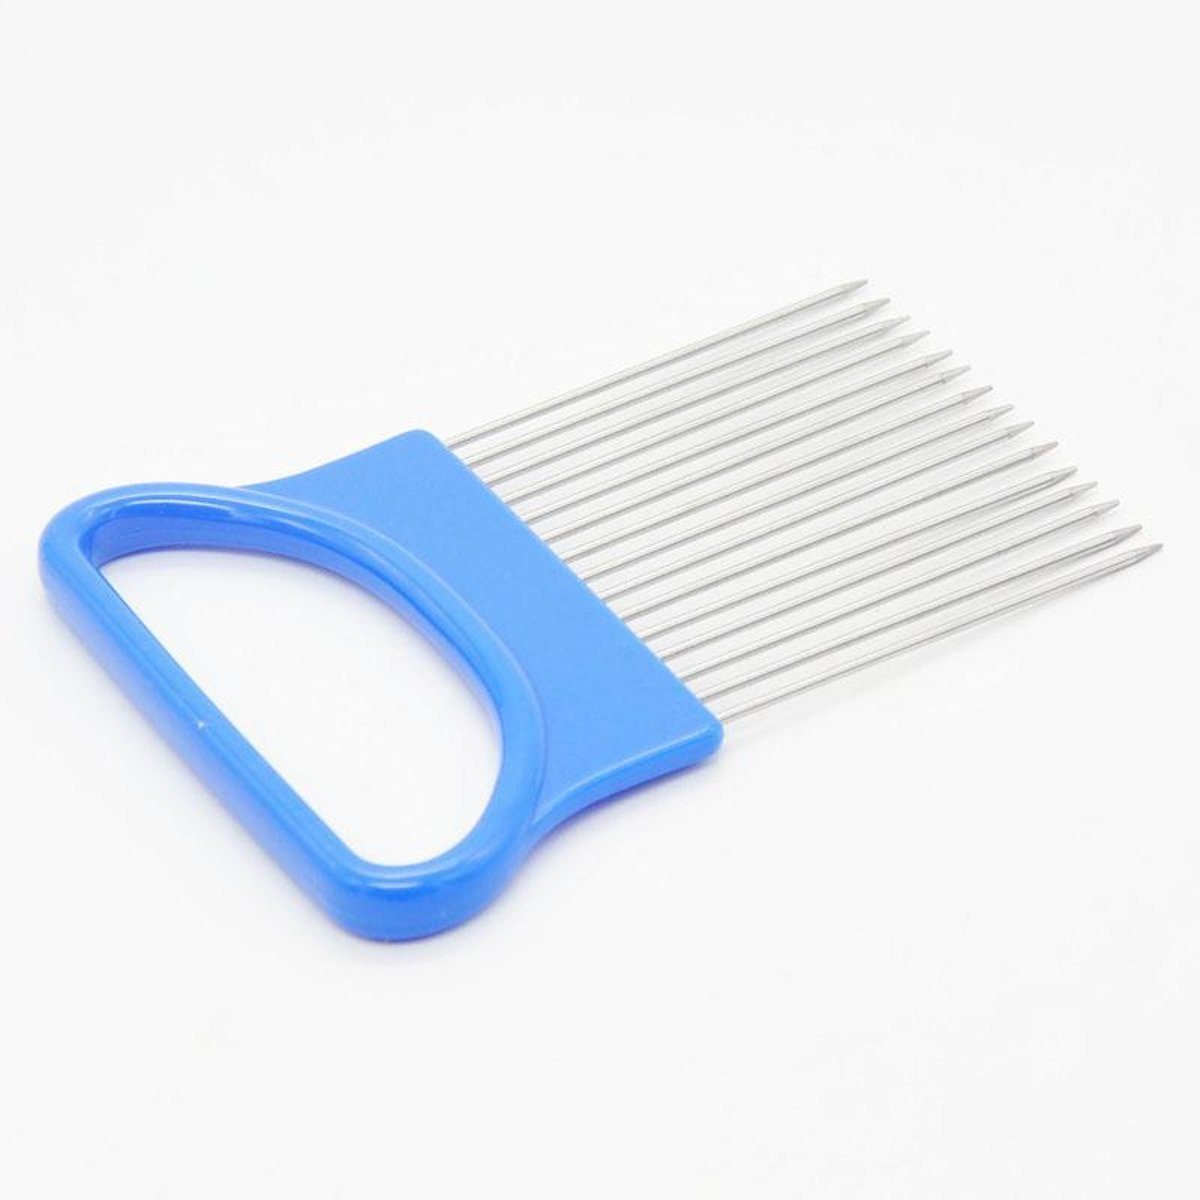 Tacoli- Kitchen Gadgets Handy Stainless Steel Onion Cutter Holder Potato Tomato Slicer Vegetable Fruit Cutter Safety Cooking Tools (BLUE)